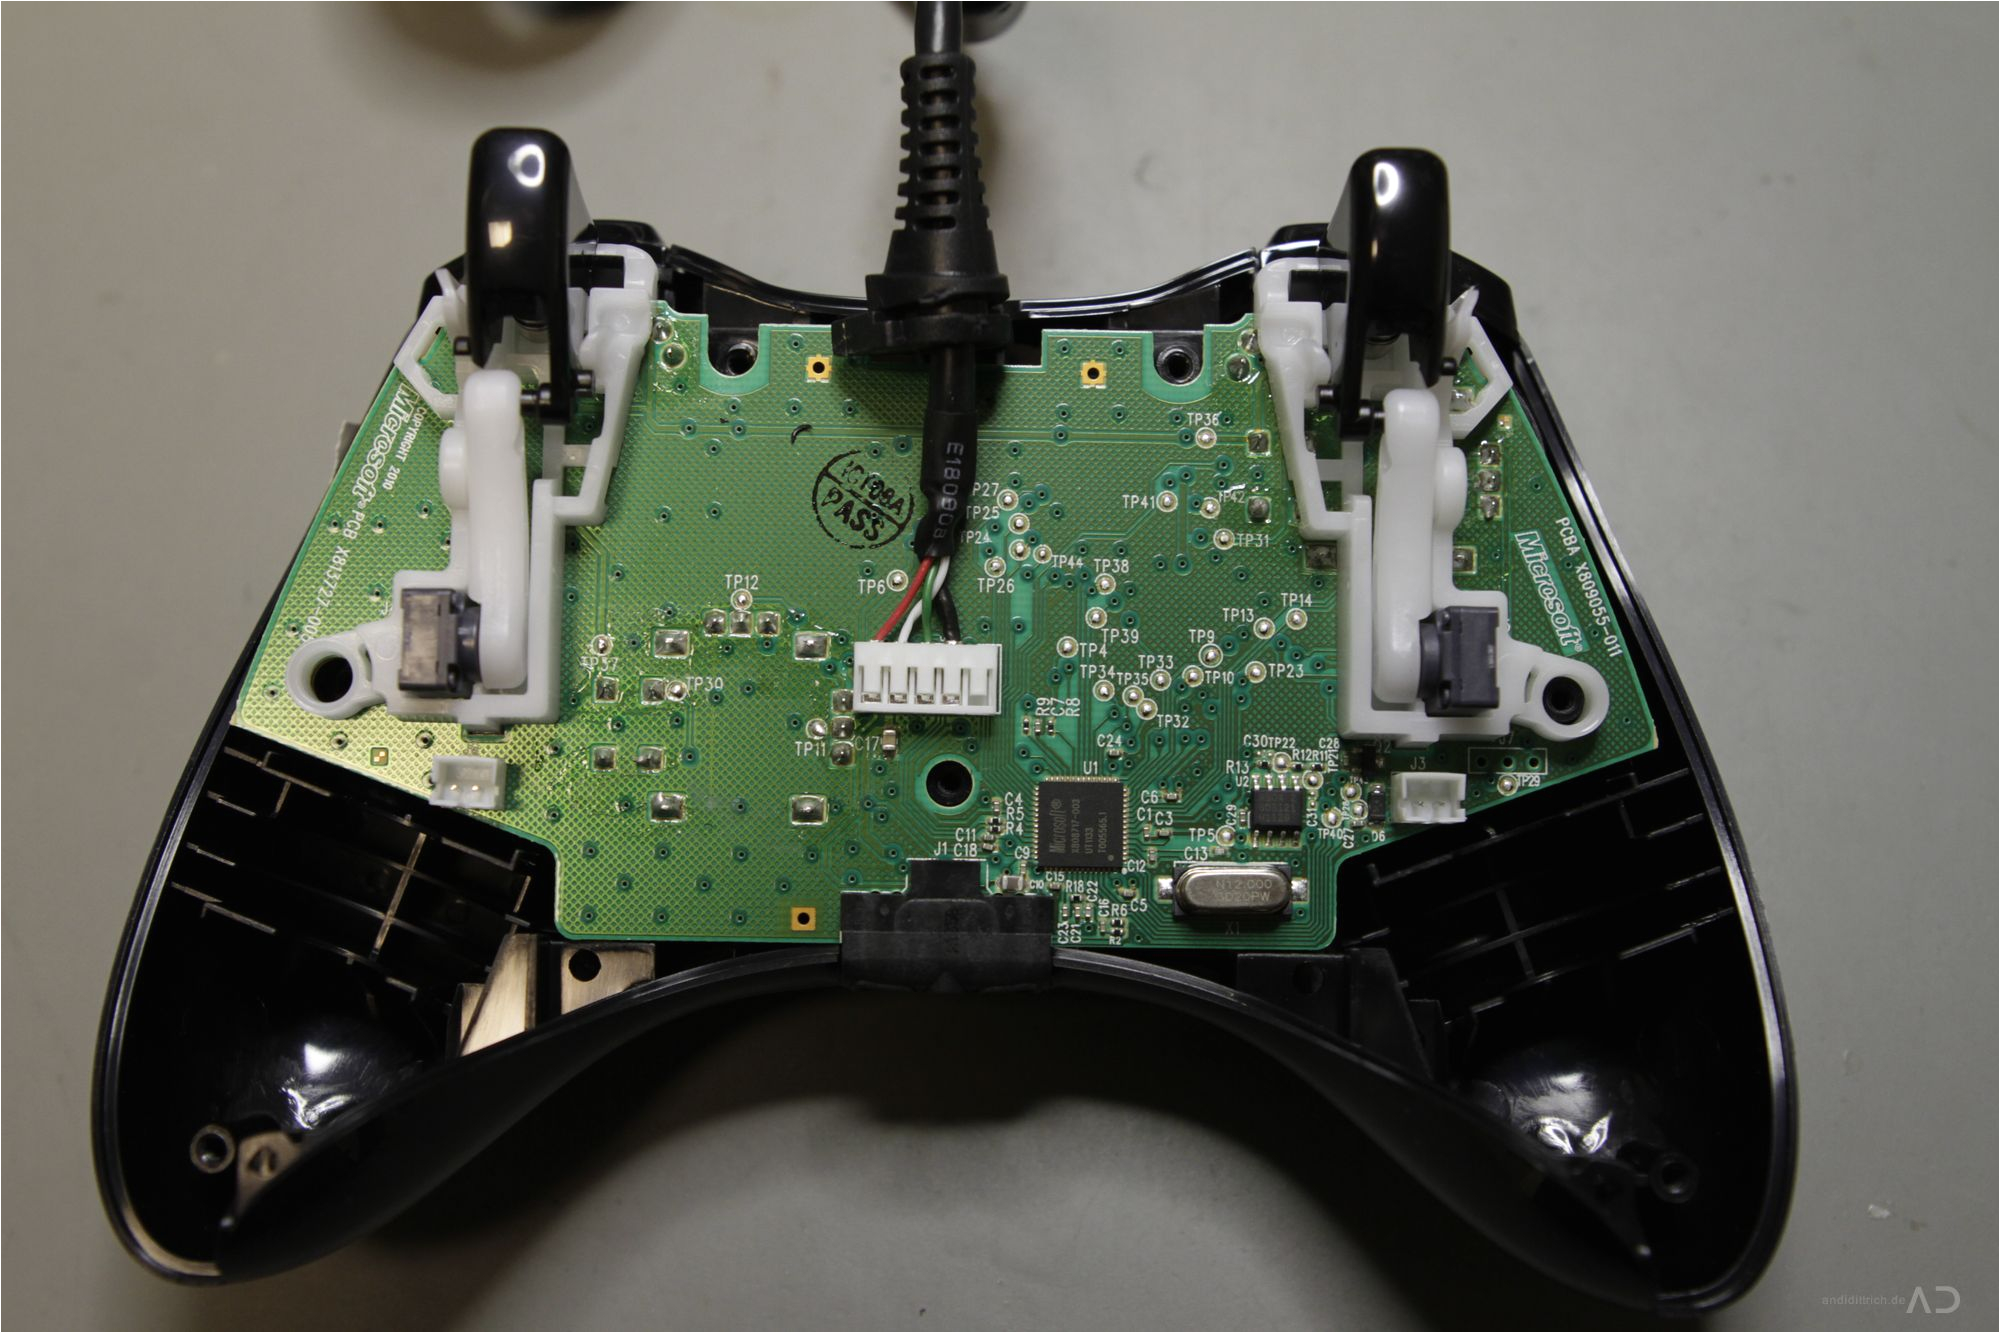 xbox 360 controller wire diagram lovely xbox 360 wireless controller wire diagram basic wiring diagram e280a2 jpg